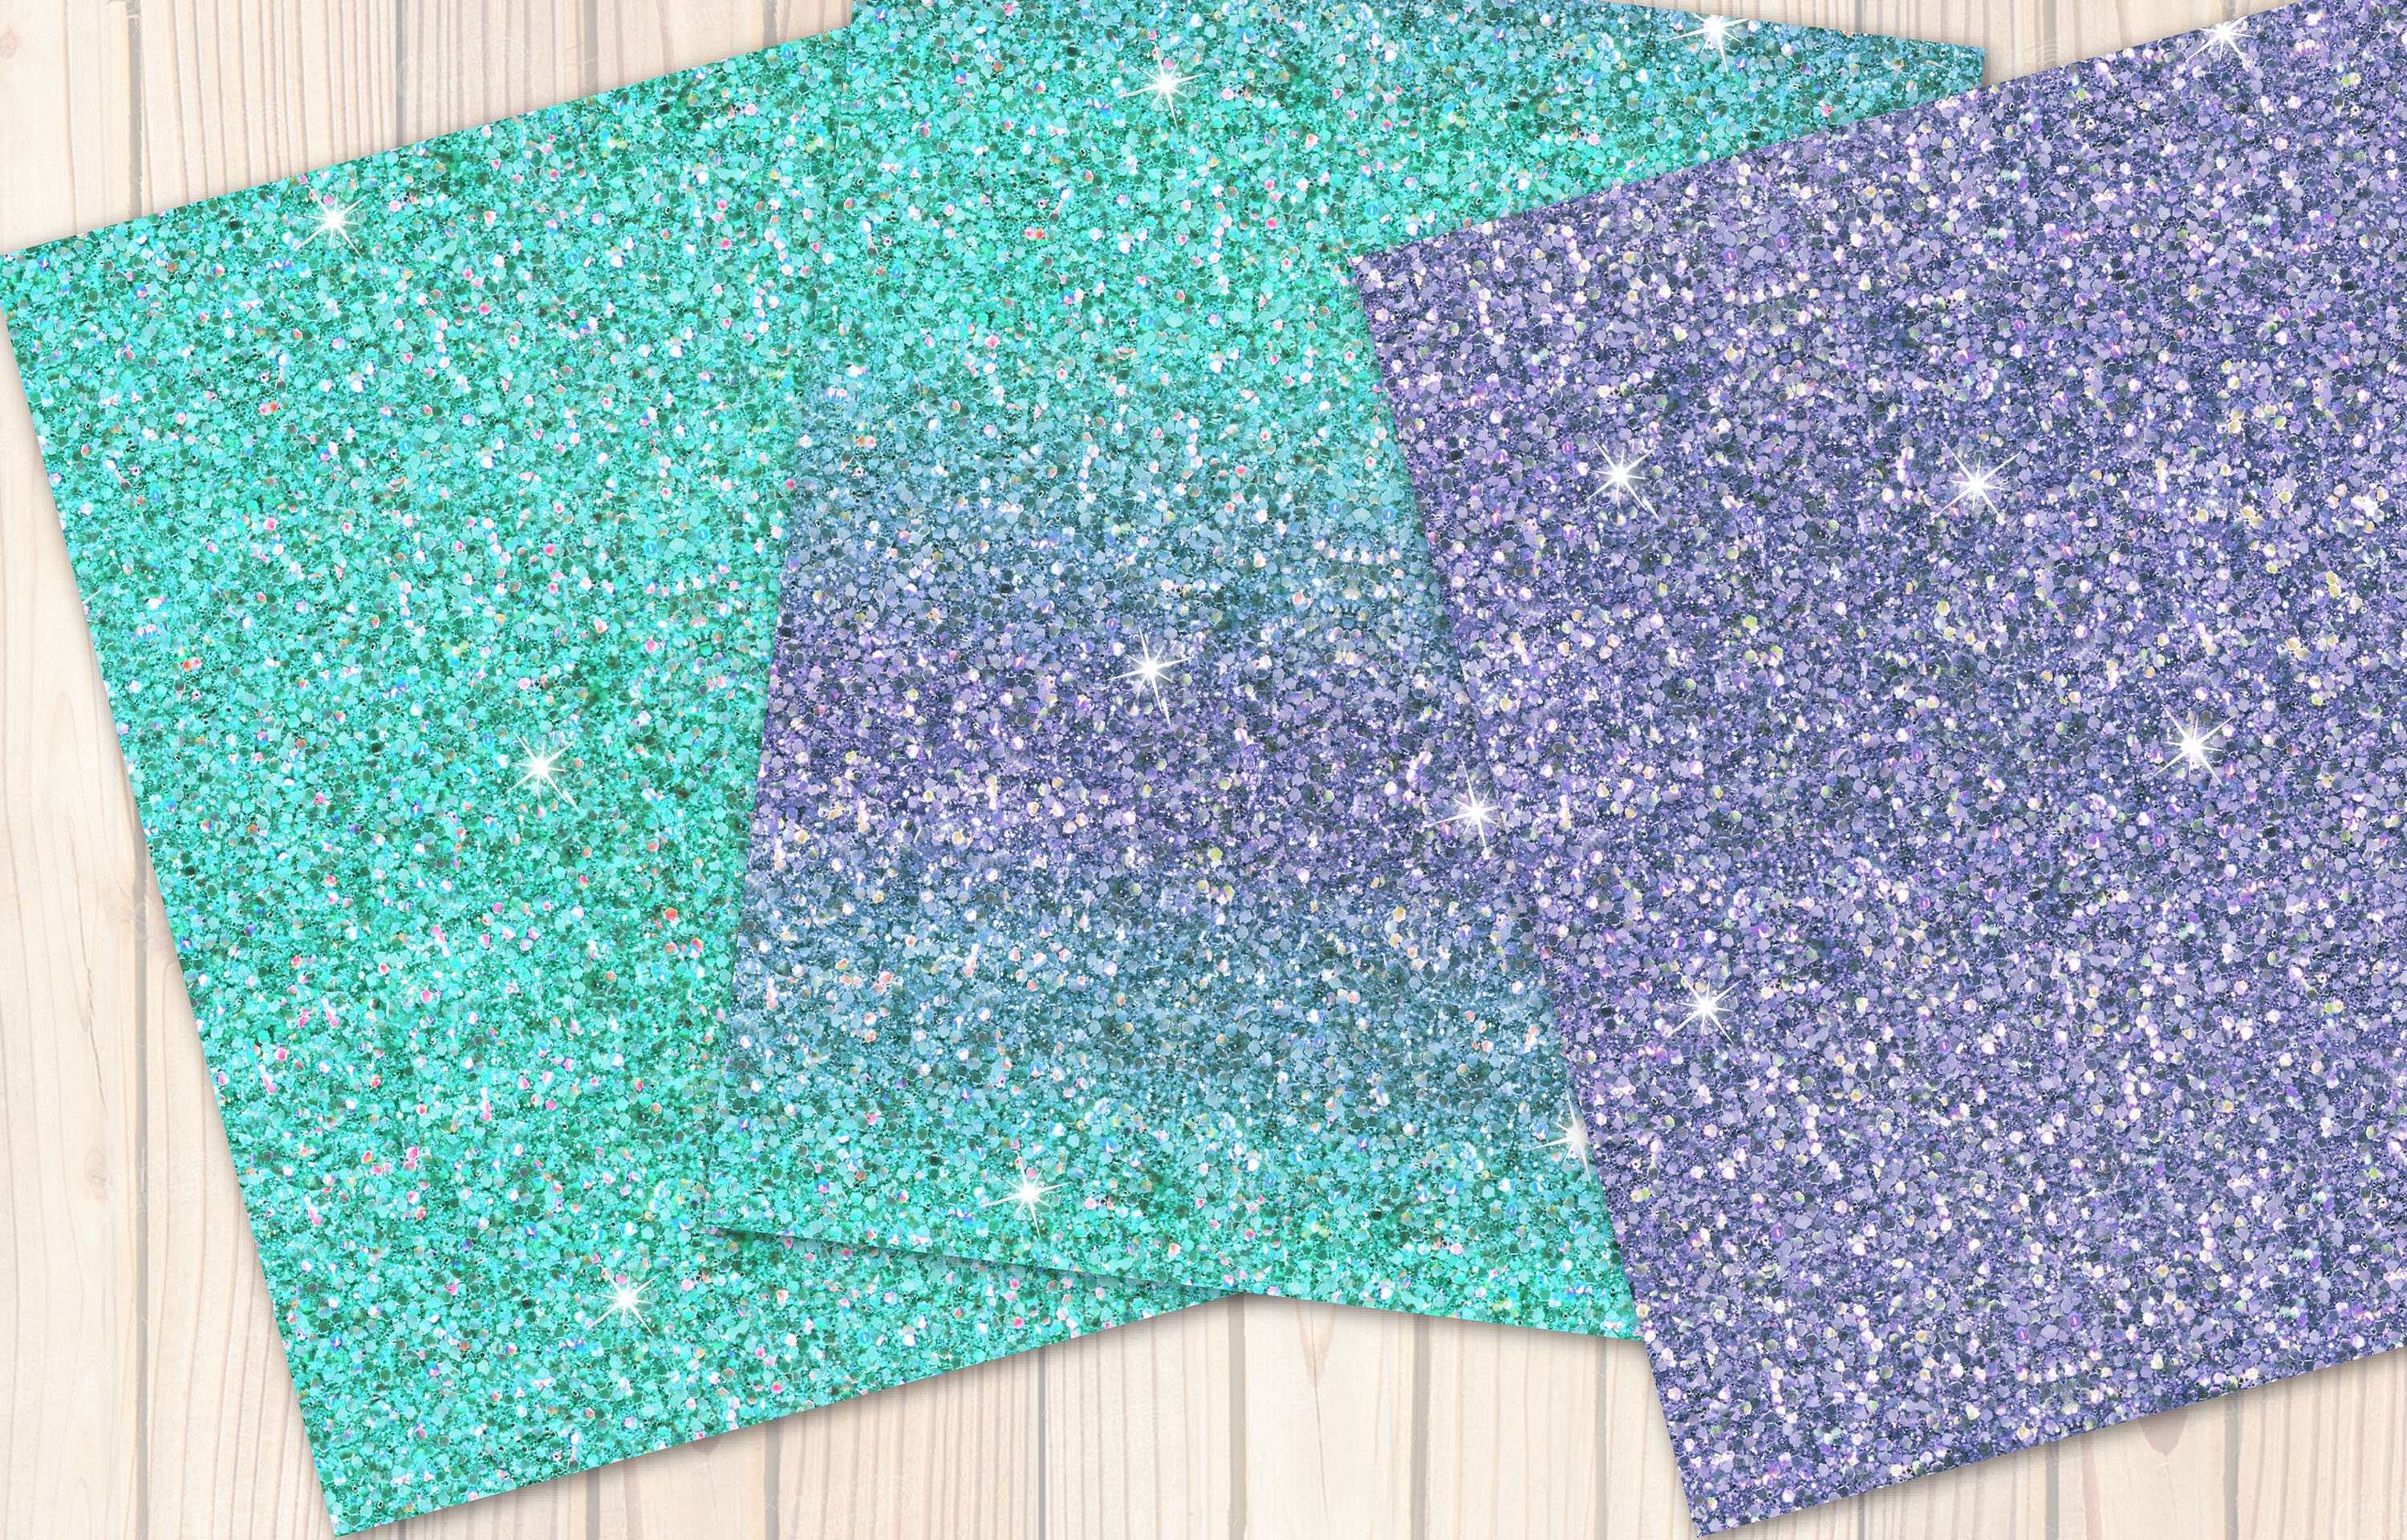 Mermaid seamless Glitter backgrounds example image 4